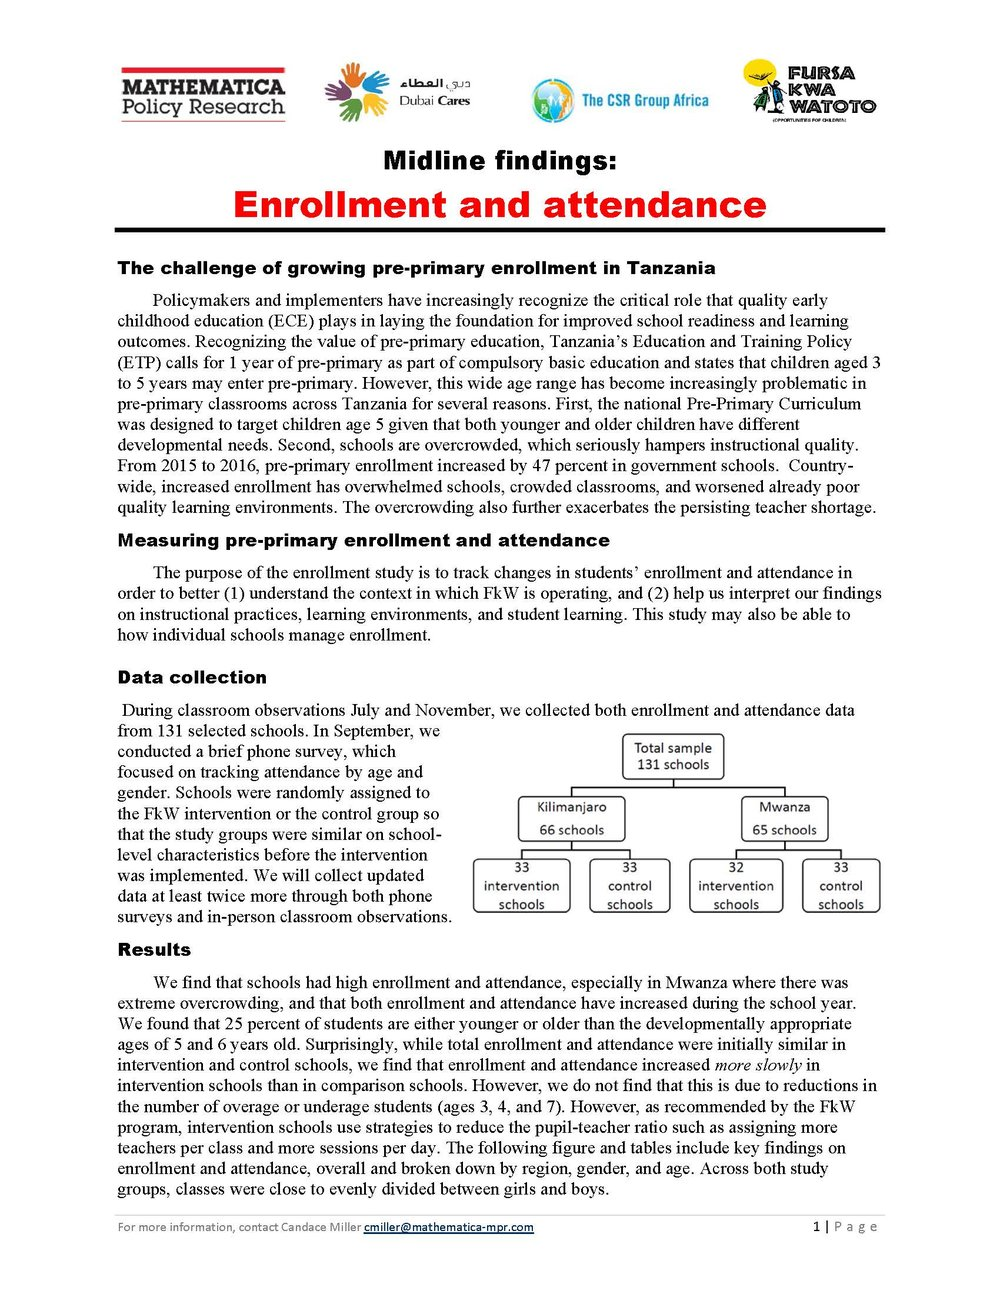 Enrollment Results Table